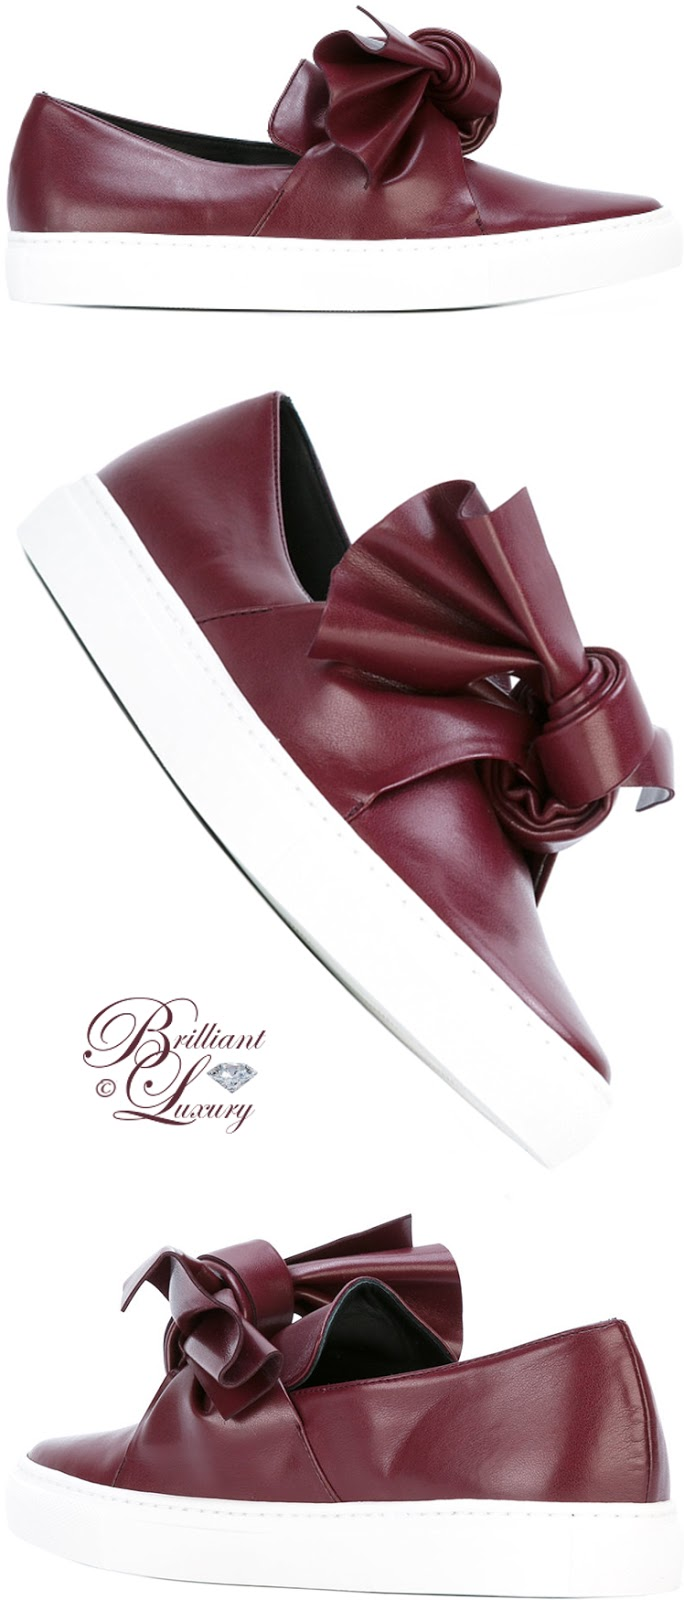 Brilliant Luxury ♦ Cédric Charlier Tie Knot Sneakers